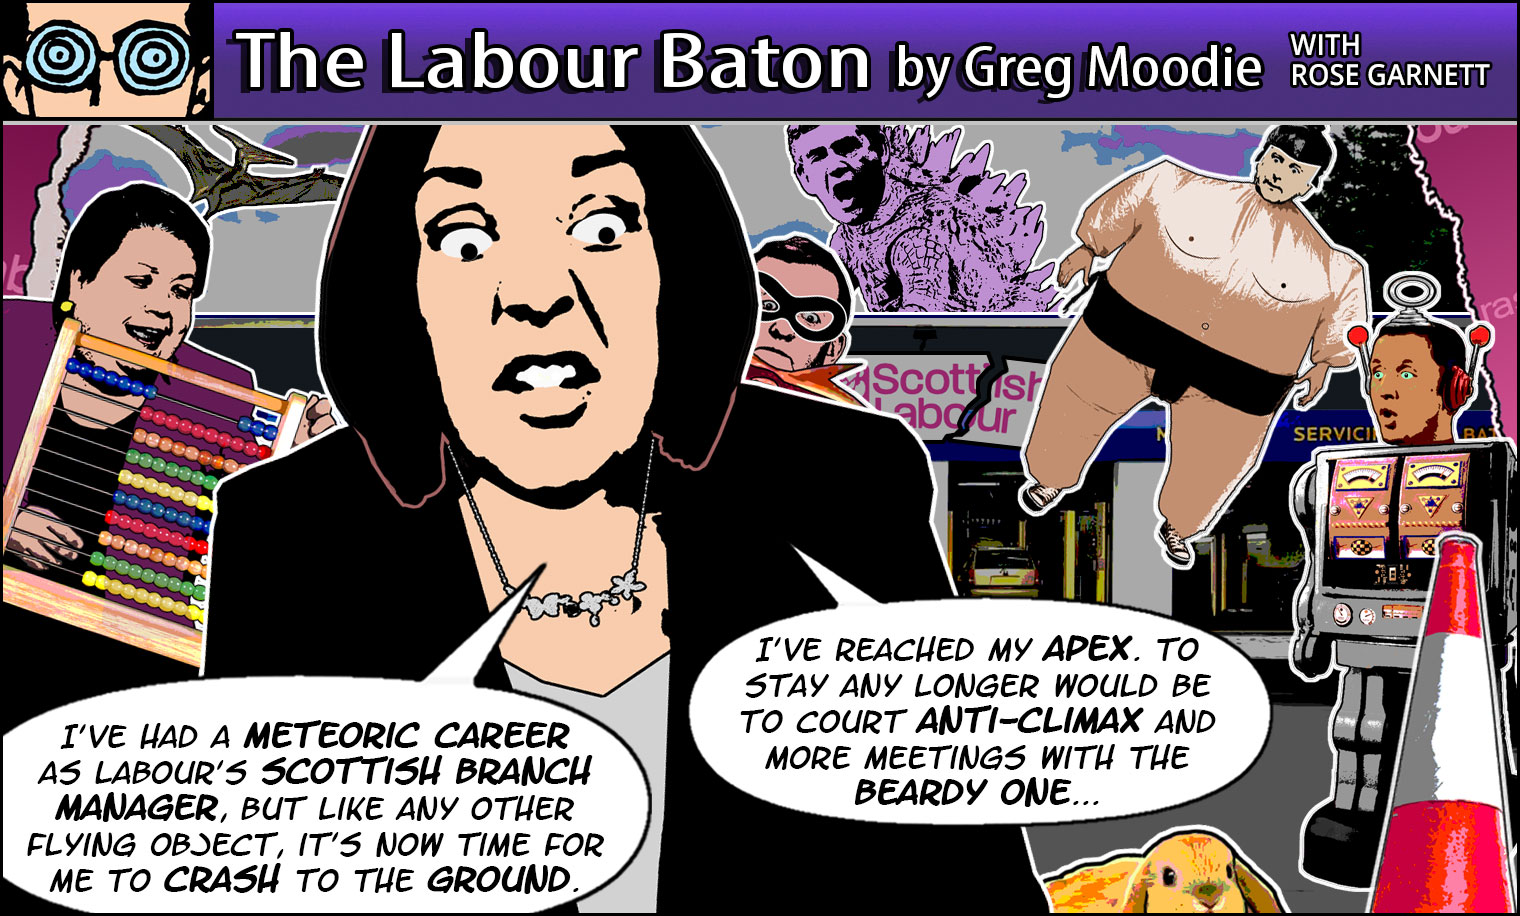 The Labour Baton